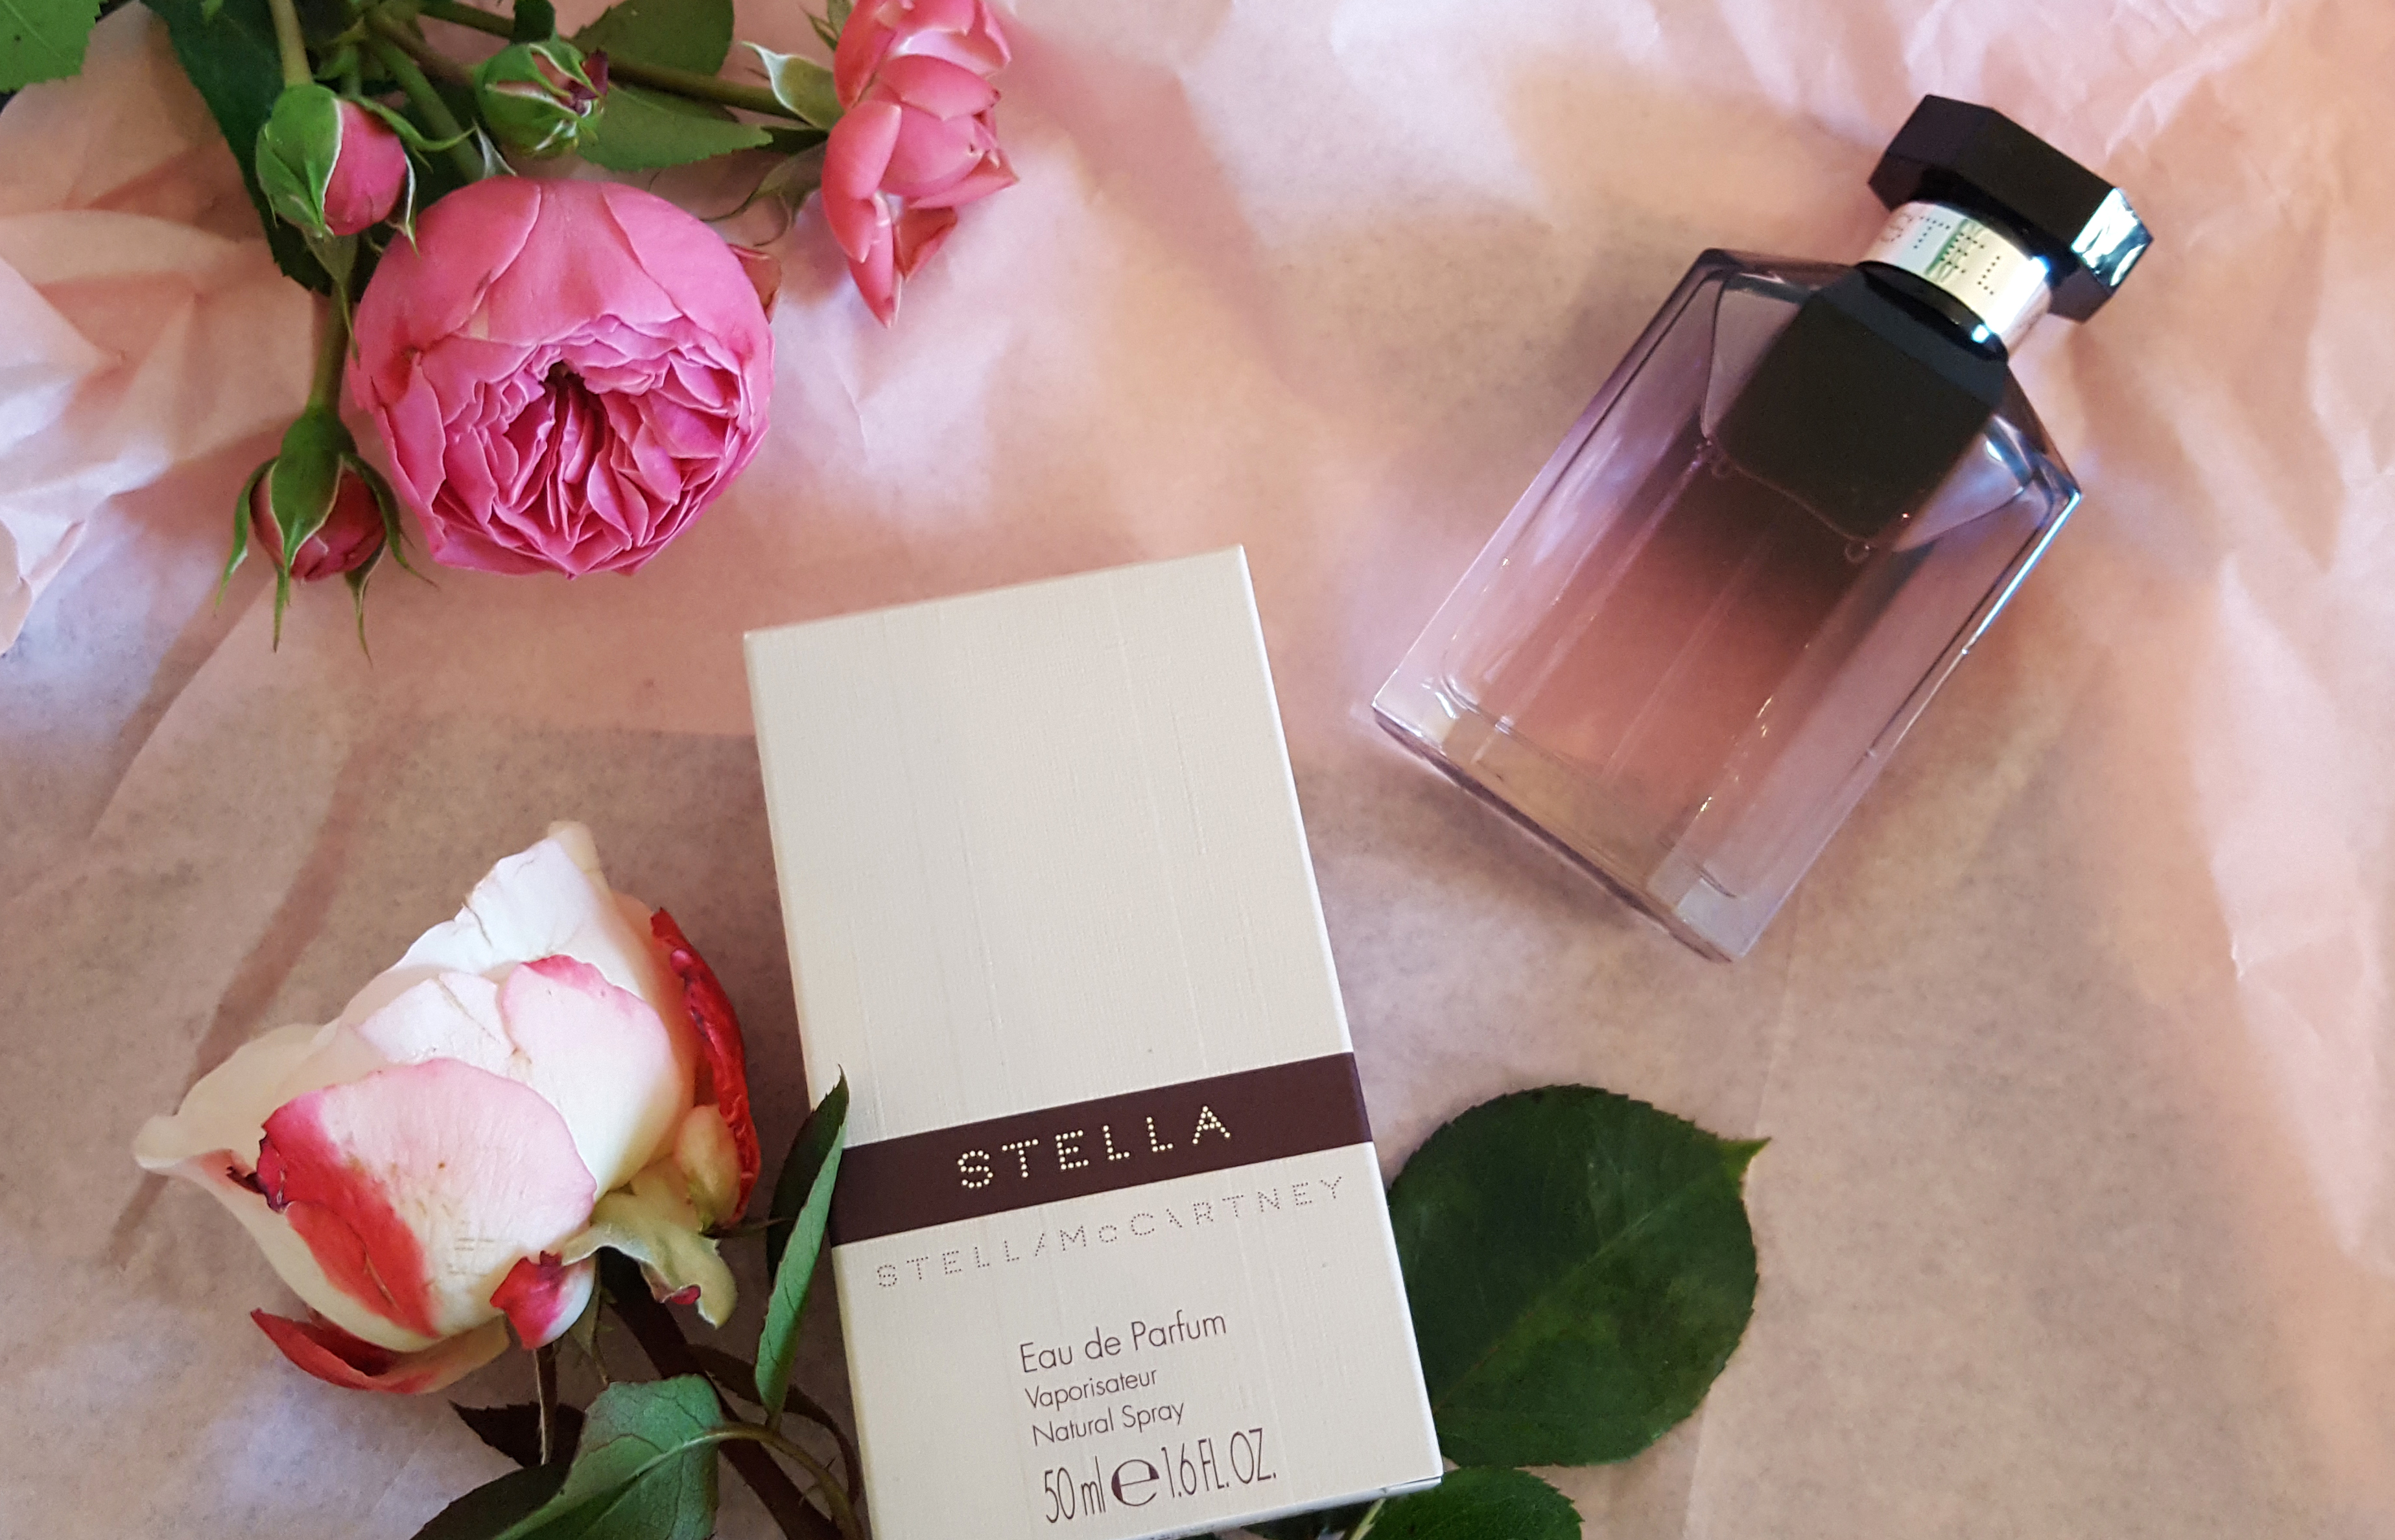 Stella by Stella McCartney Eau de Parfum 01